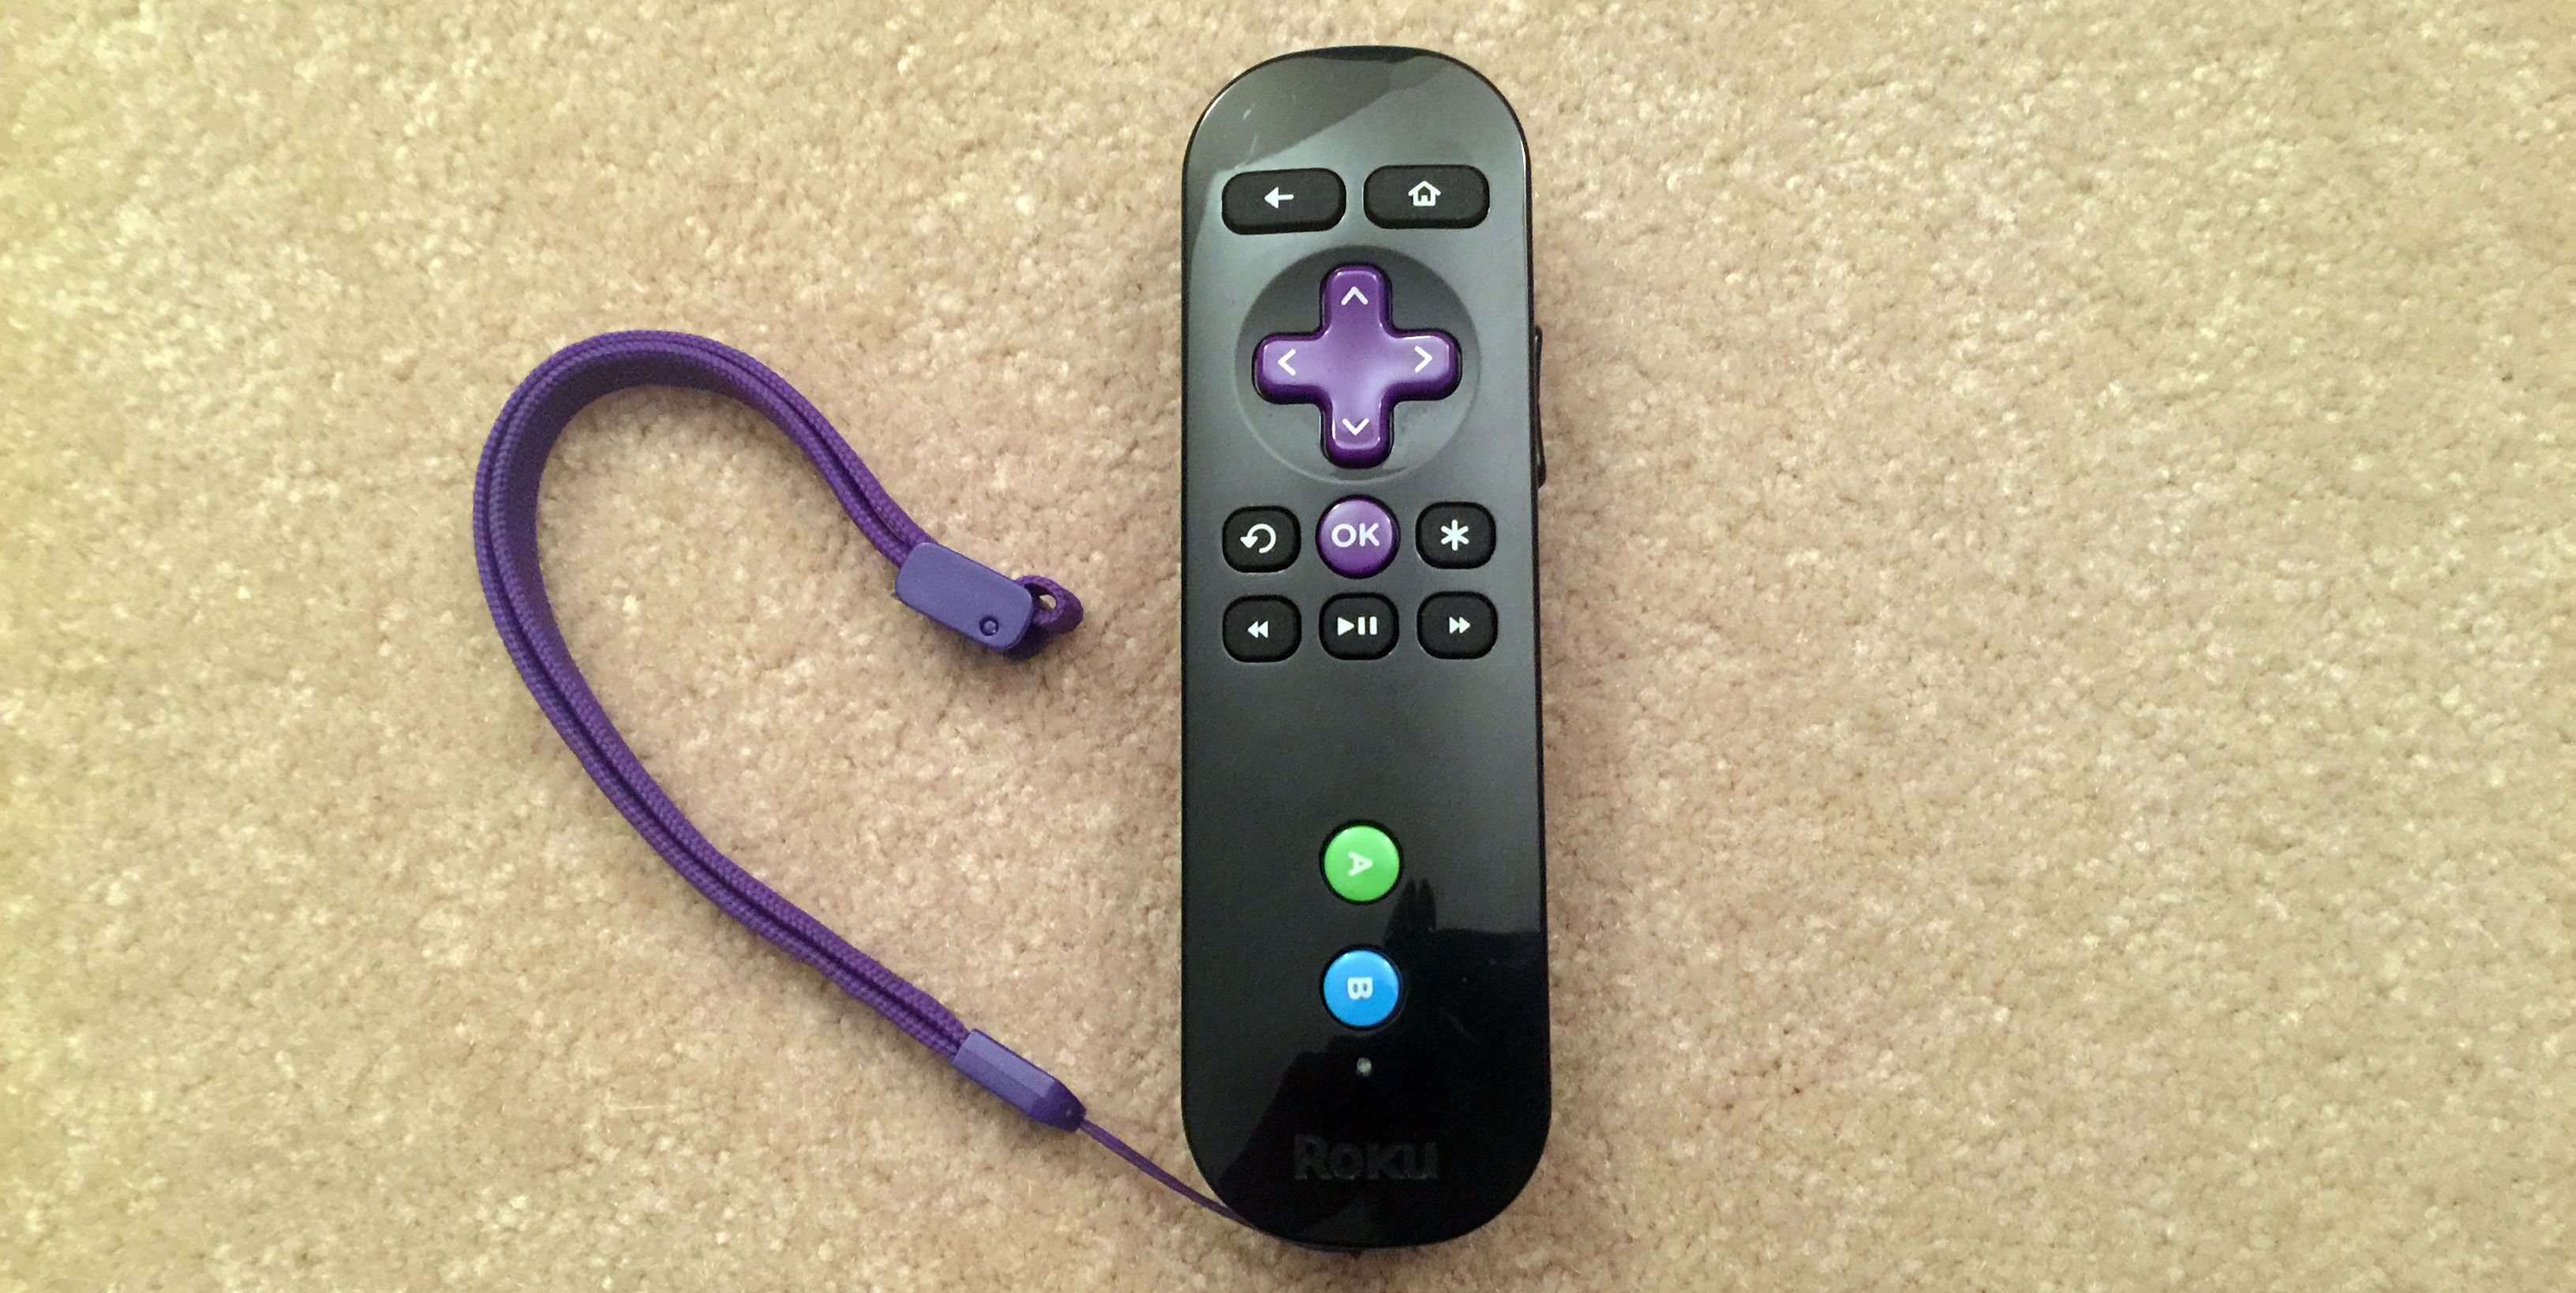 The problems related to Roku remote can be easily solved